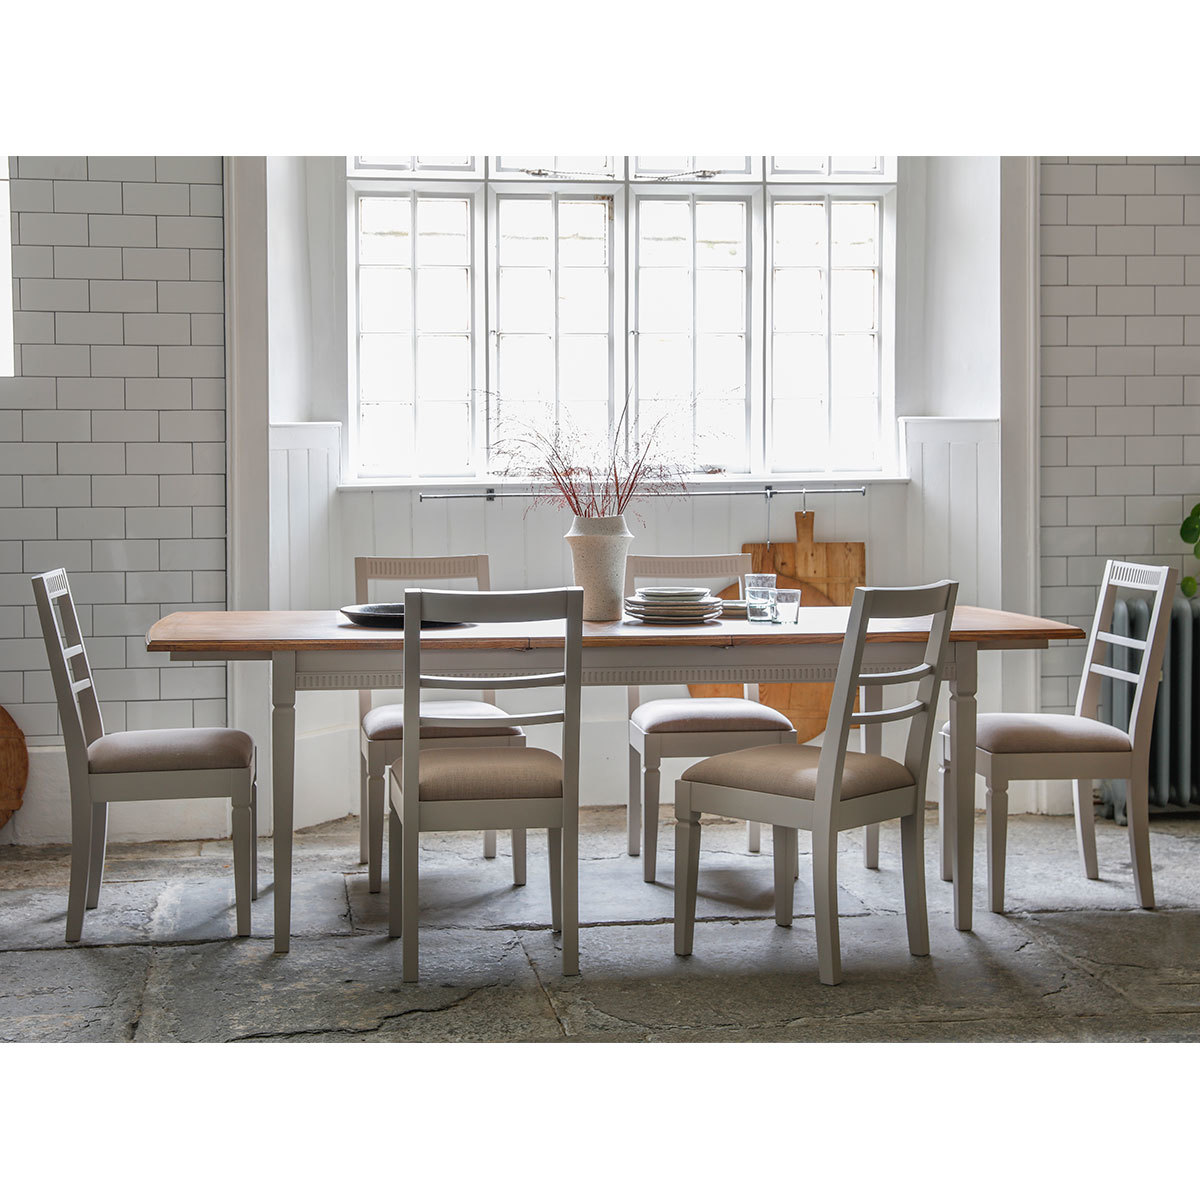 Costco Tables And Chairs Bronte Painted Taupe Extending Dining Room Table 6 Chairs Taupe Costco Uk